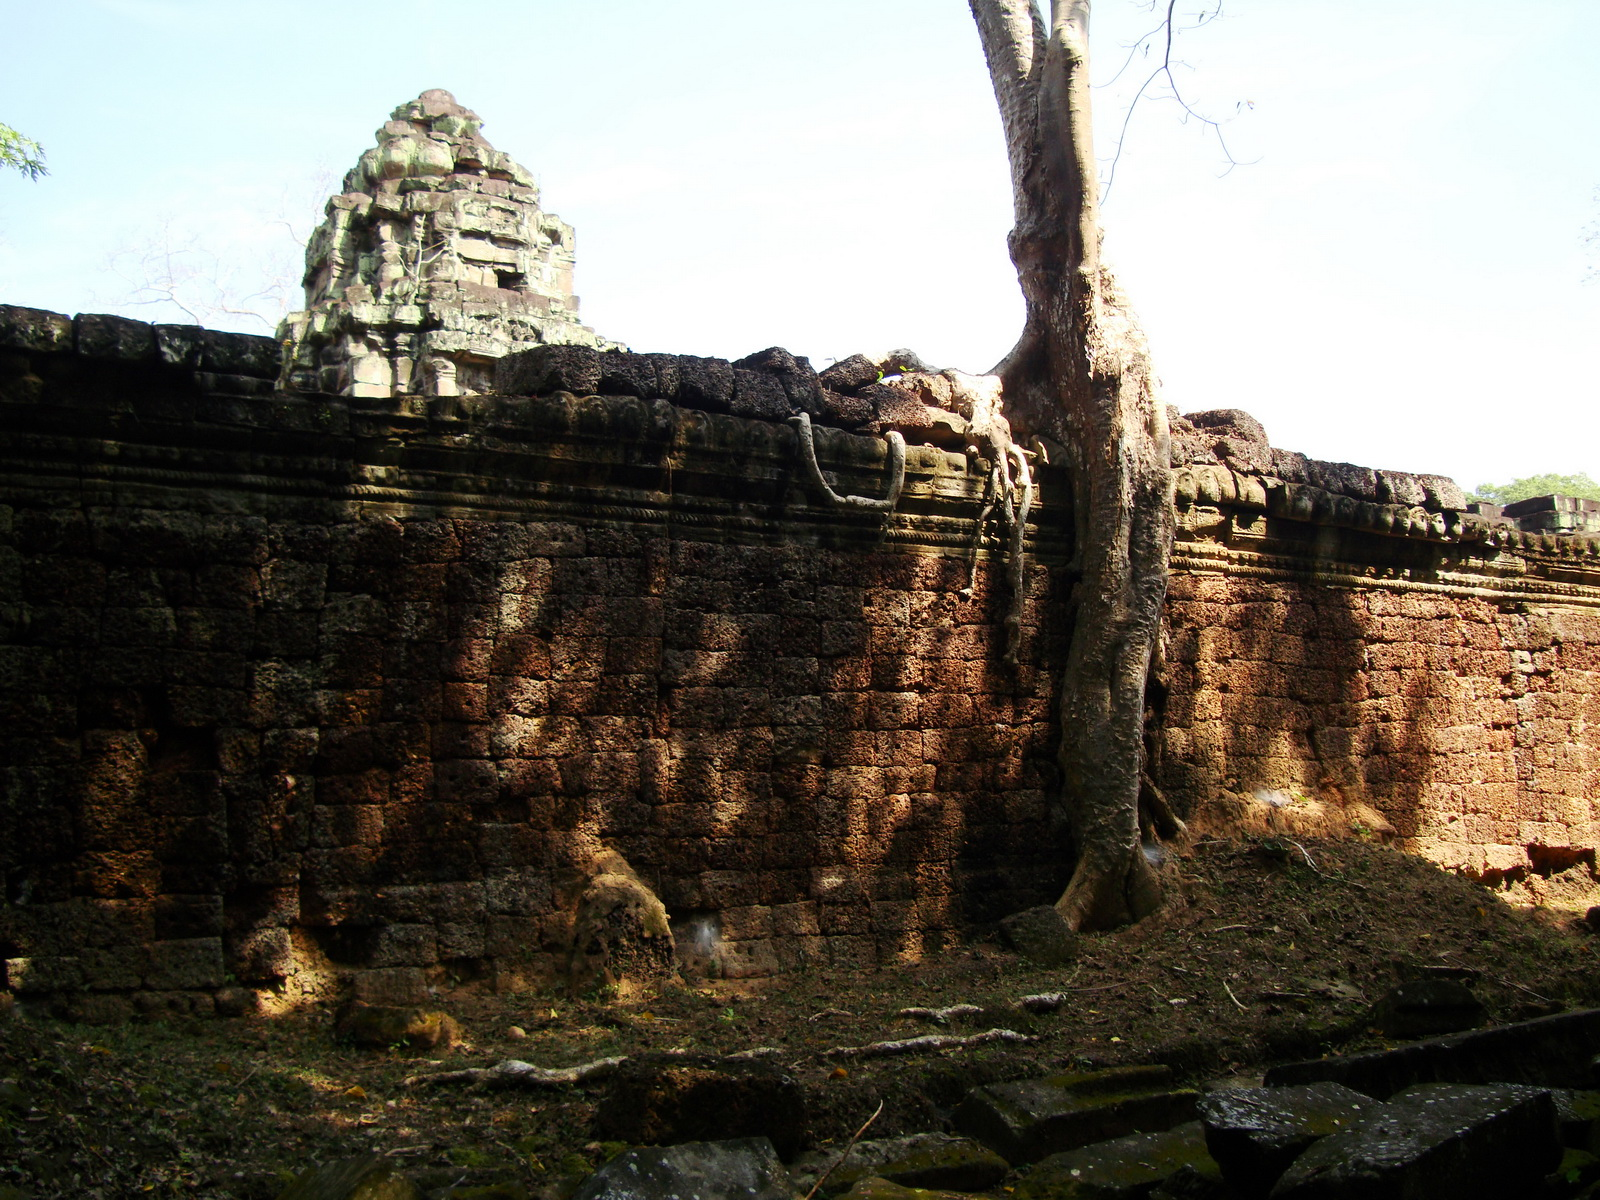 Preah Khan Temple laterite walls overtaken by giant strangler fig trees 06